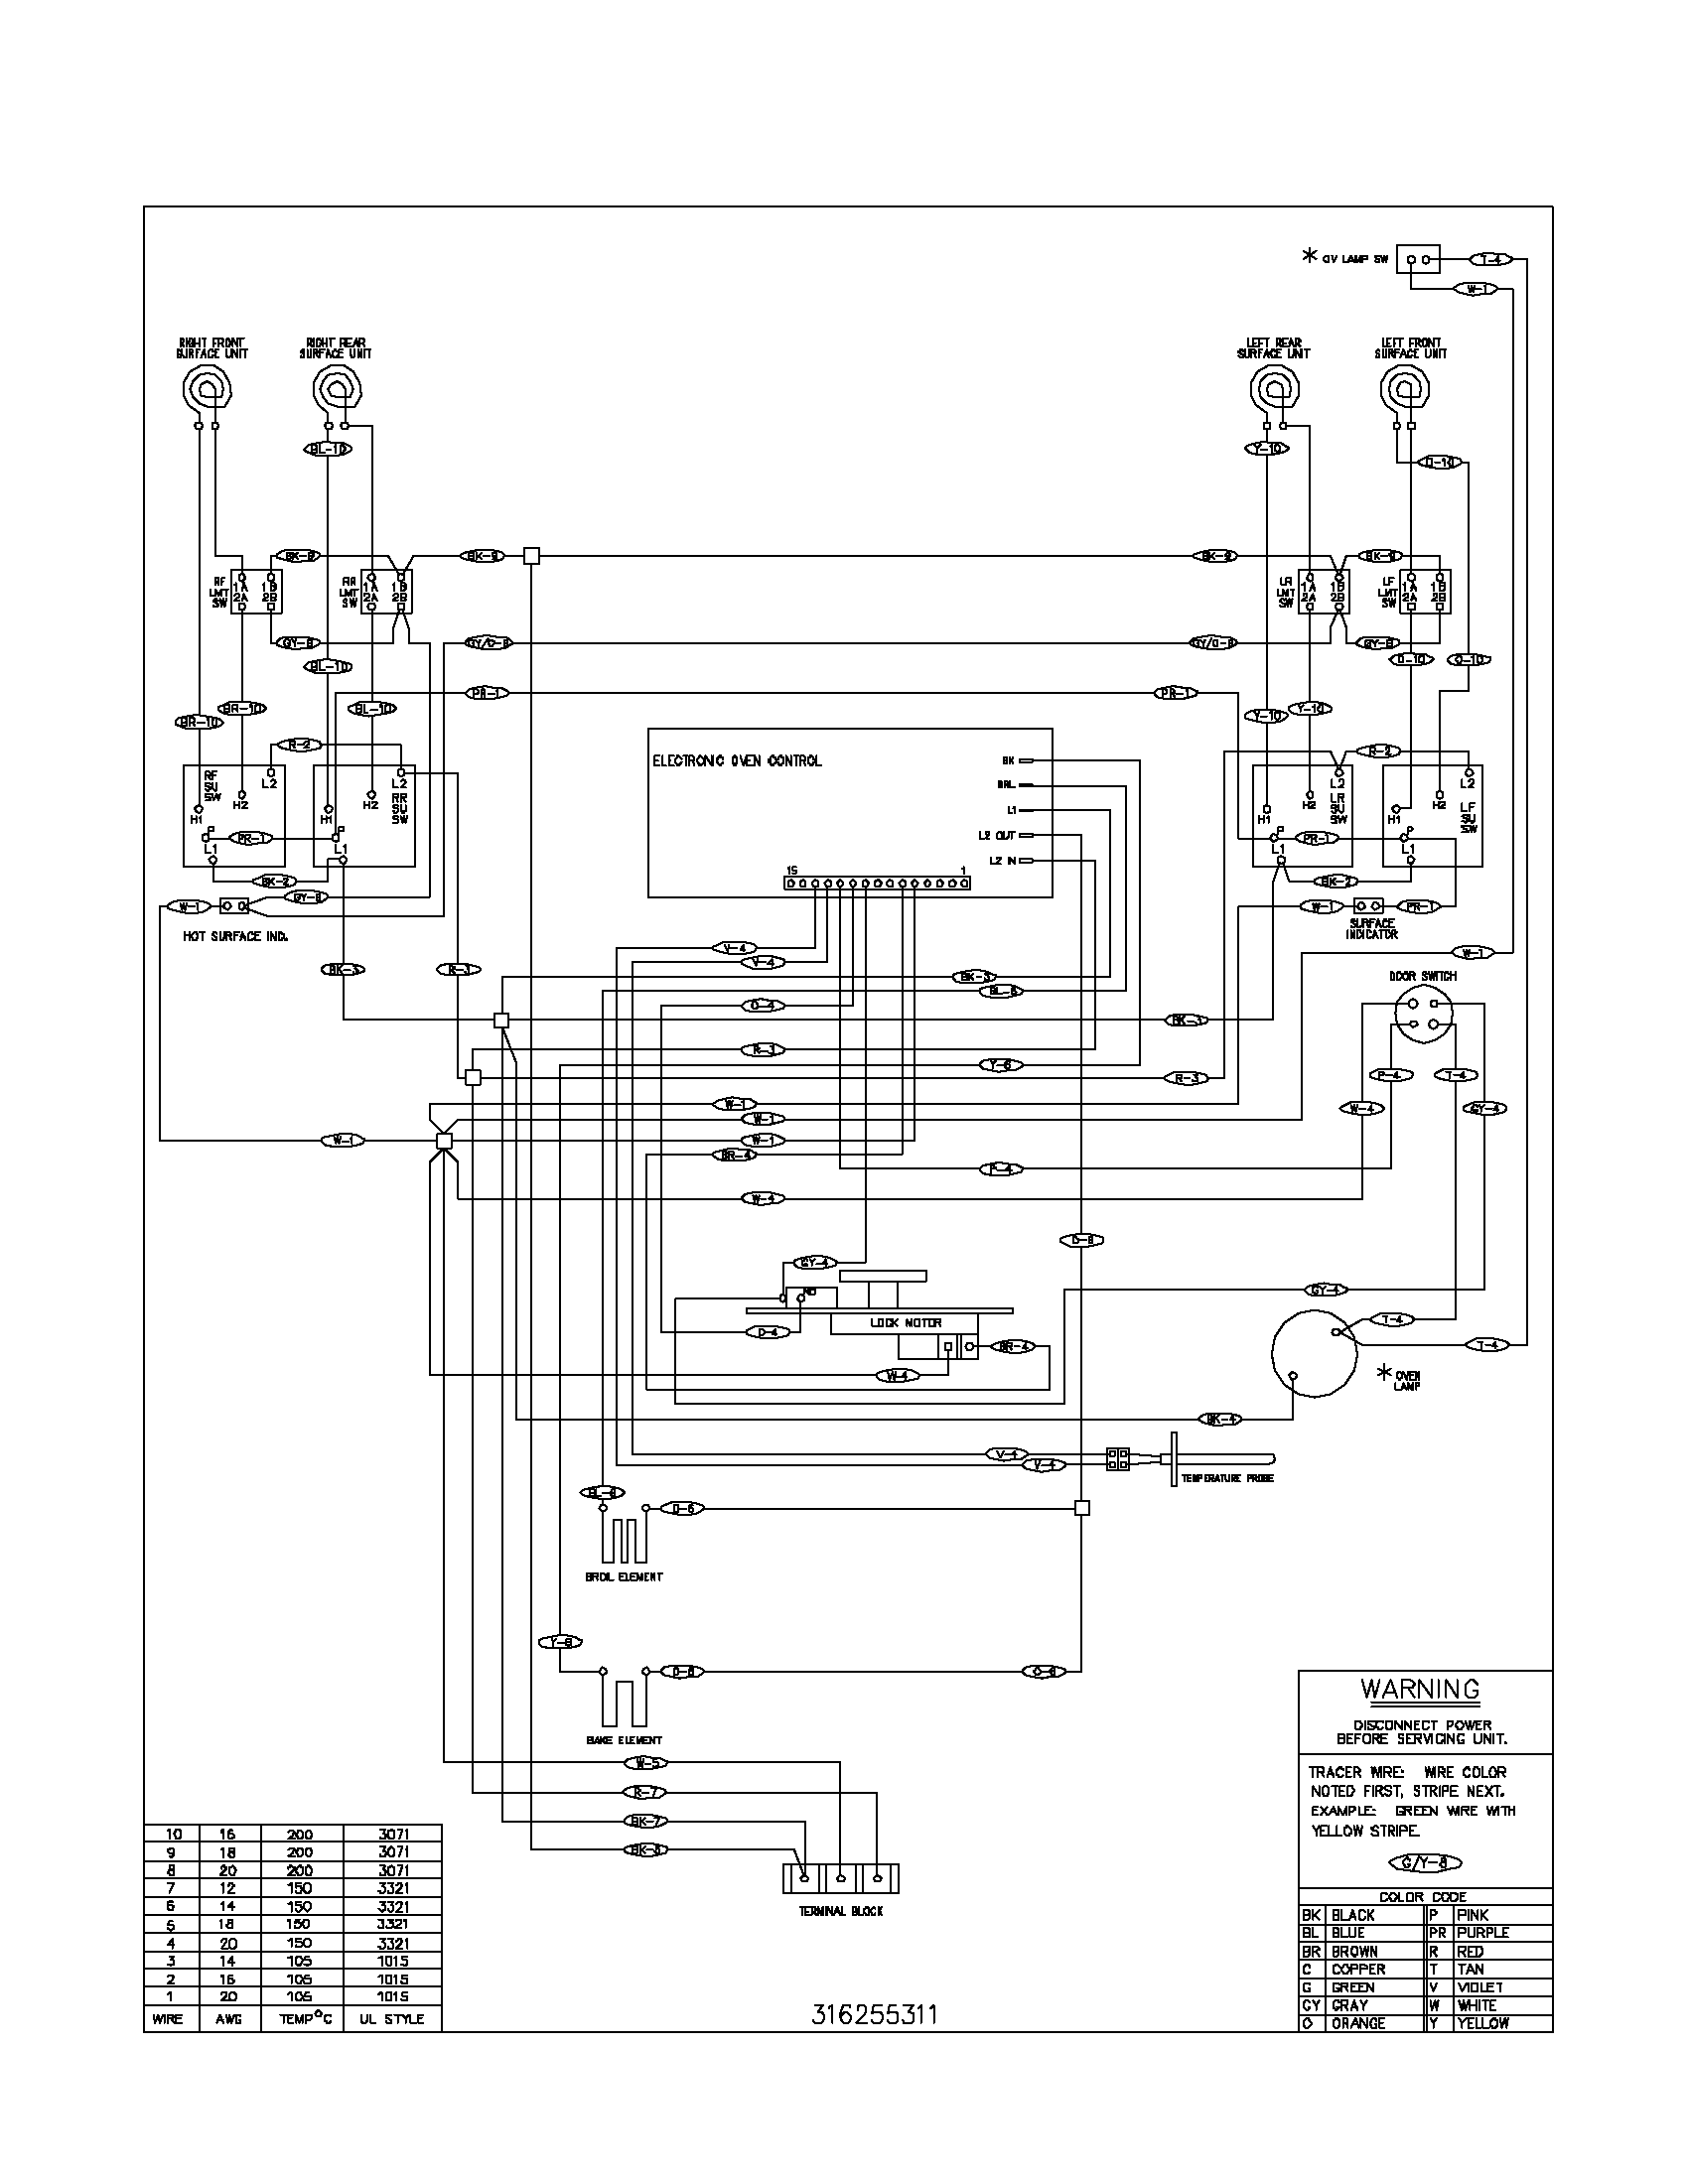 Wiring Diagram For Frigidaire Refrigerator together with Wiring Diagram For Troy Bilt Tiller further US8499875 as well Apollo also 57796633 Cfa5 4acc B318. on viking wiring diagrams